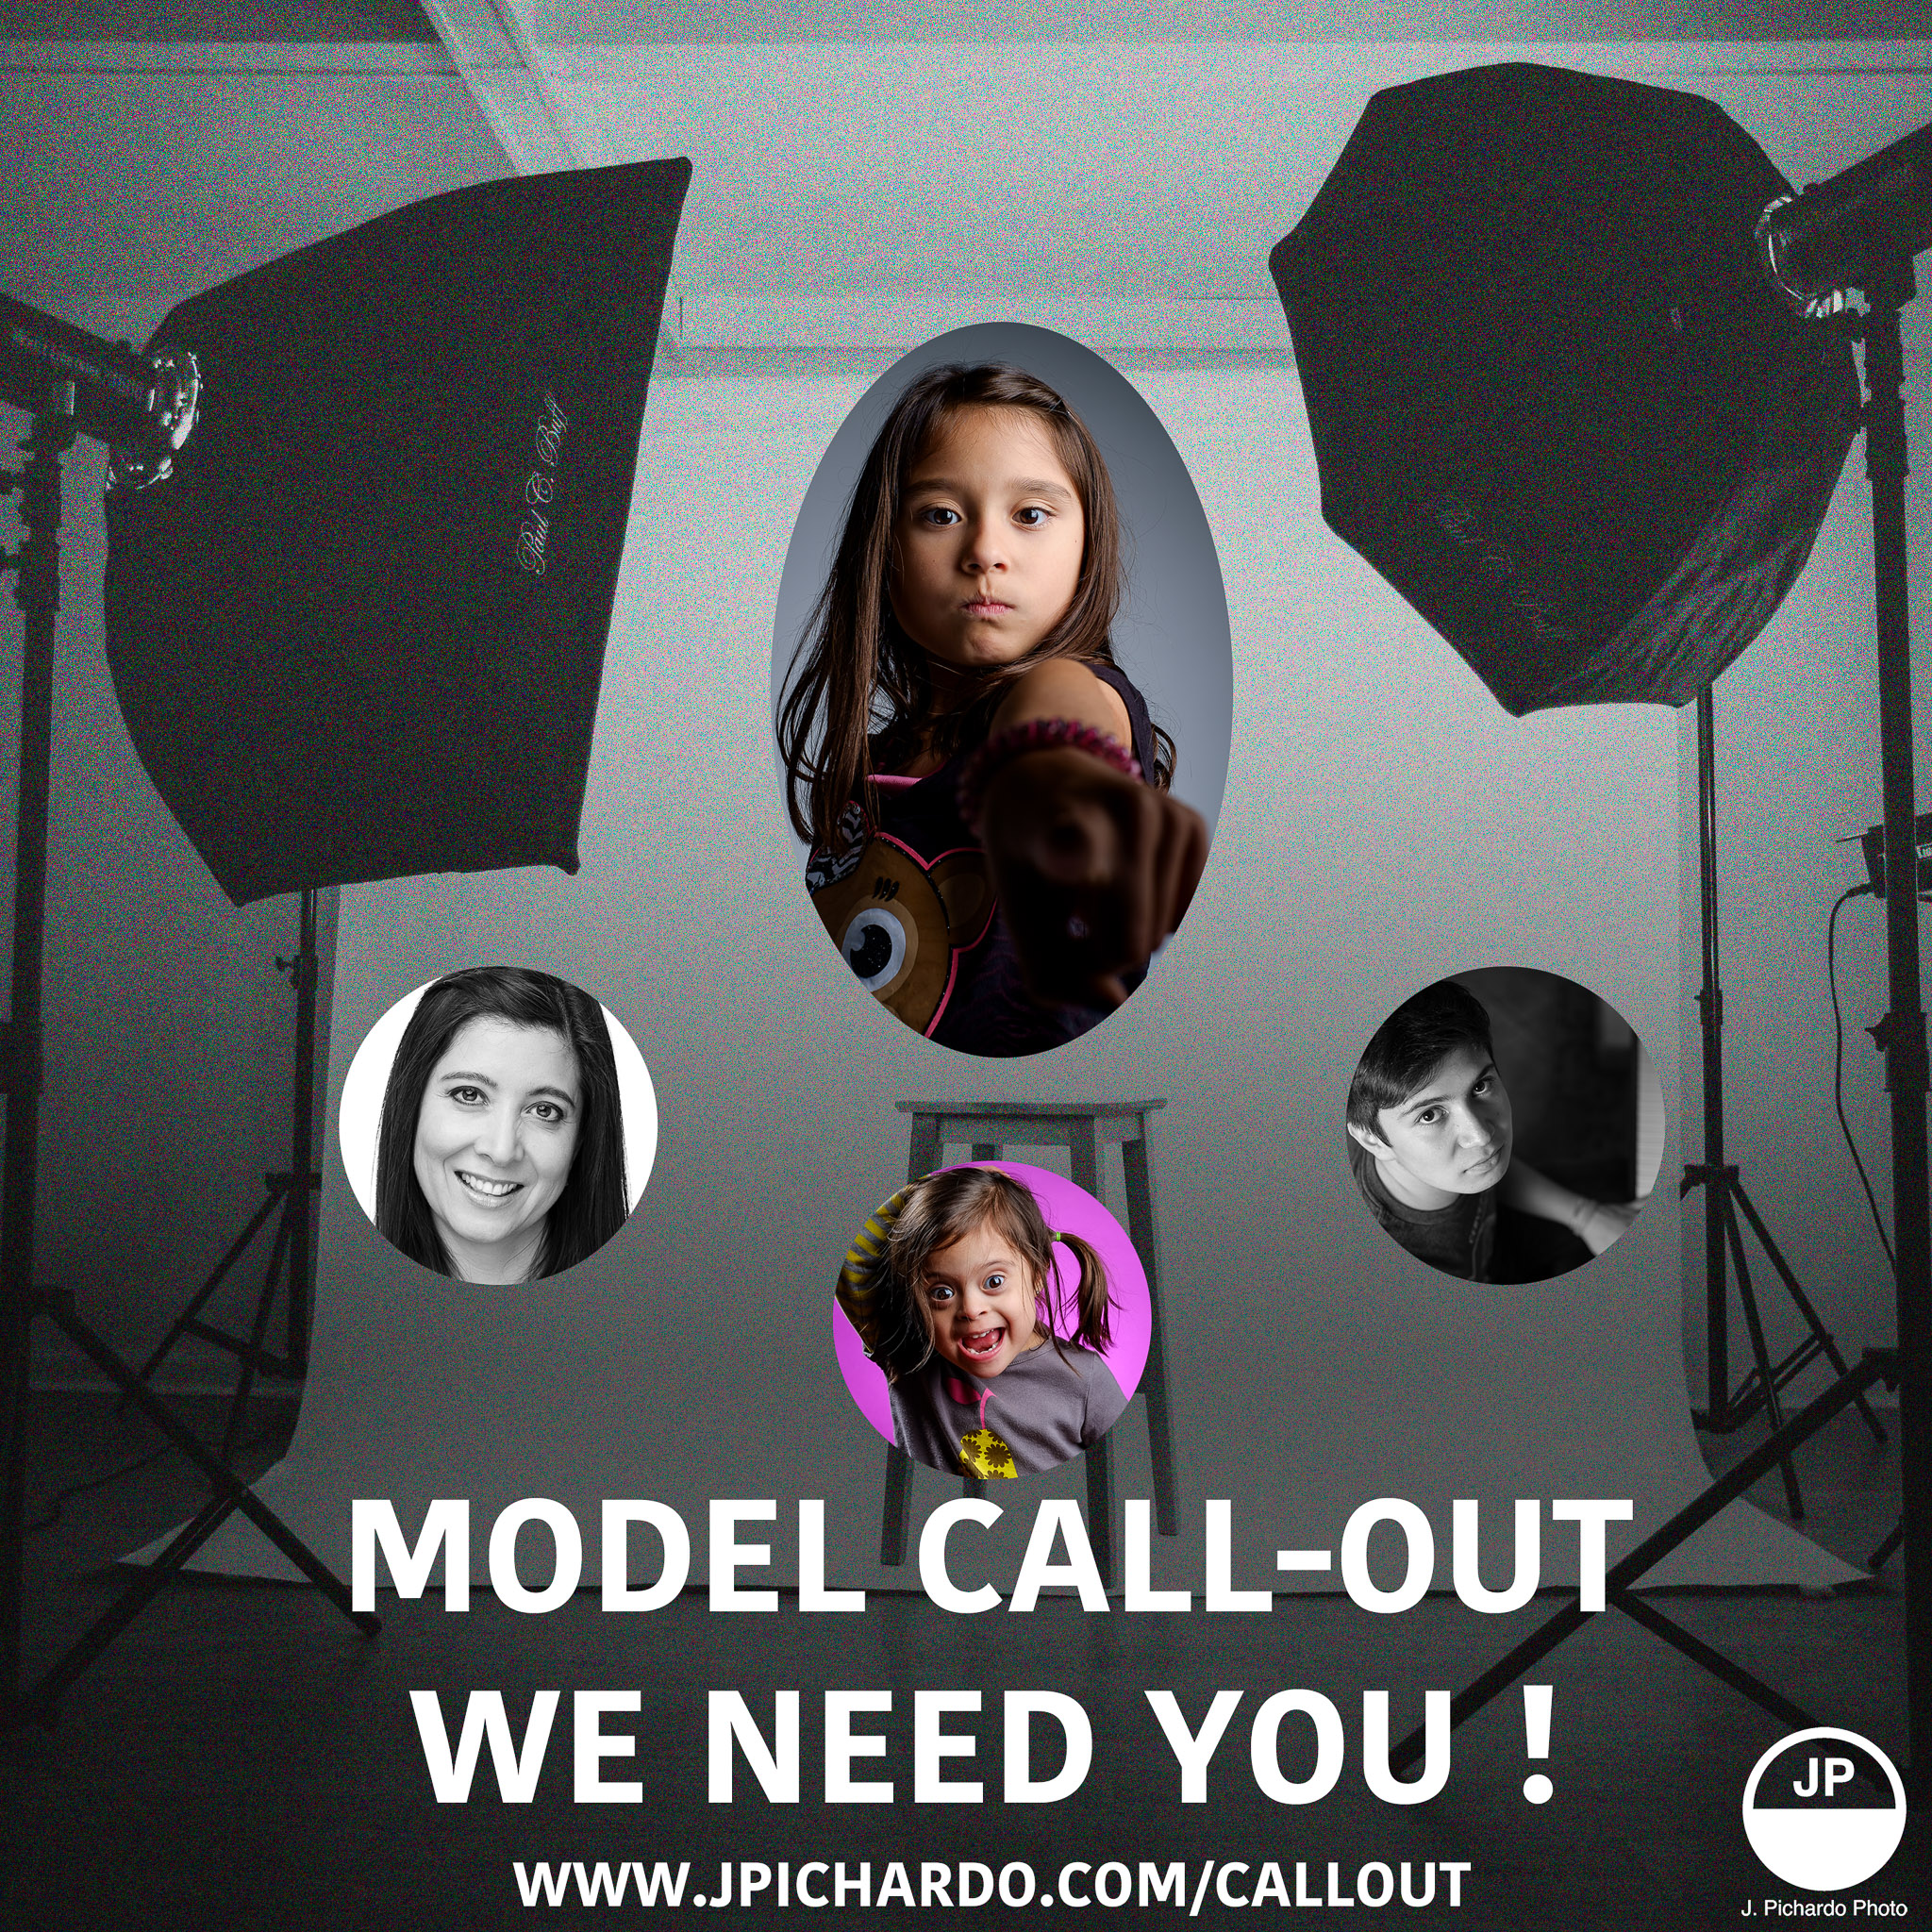 Model Call-Out December 2014